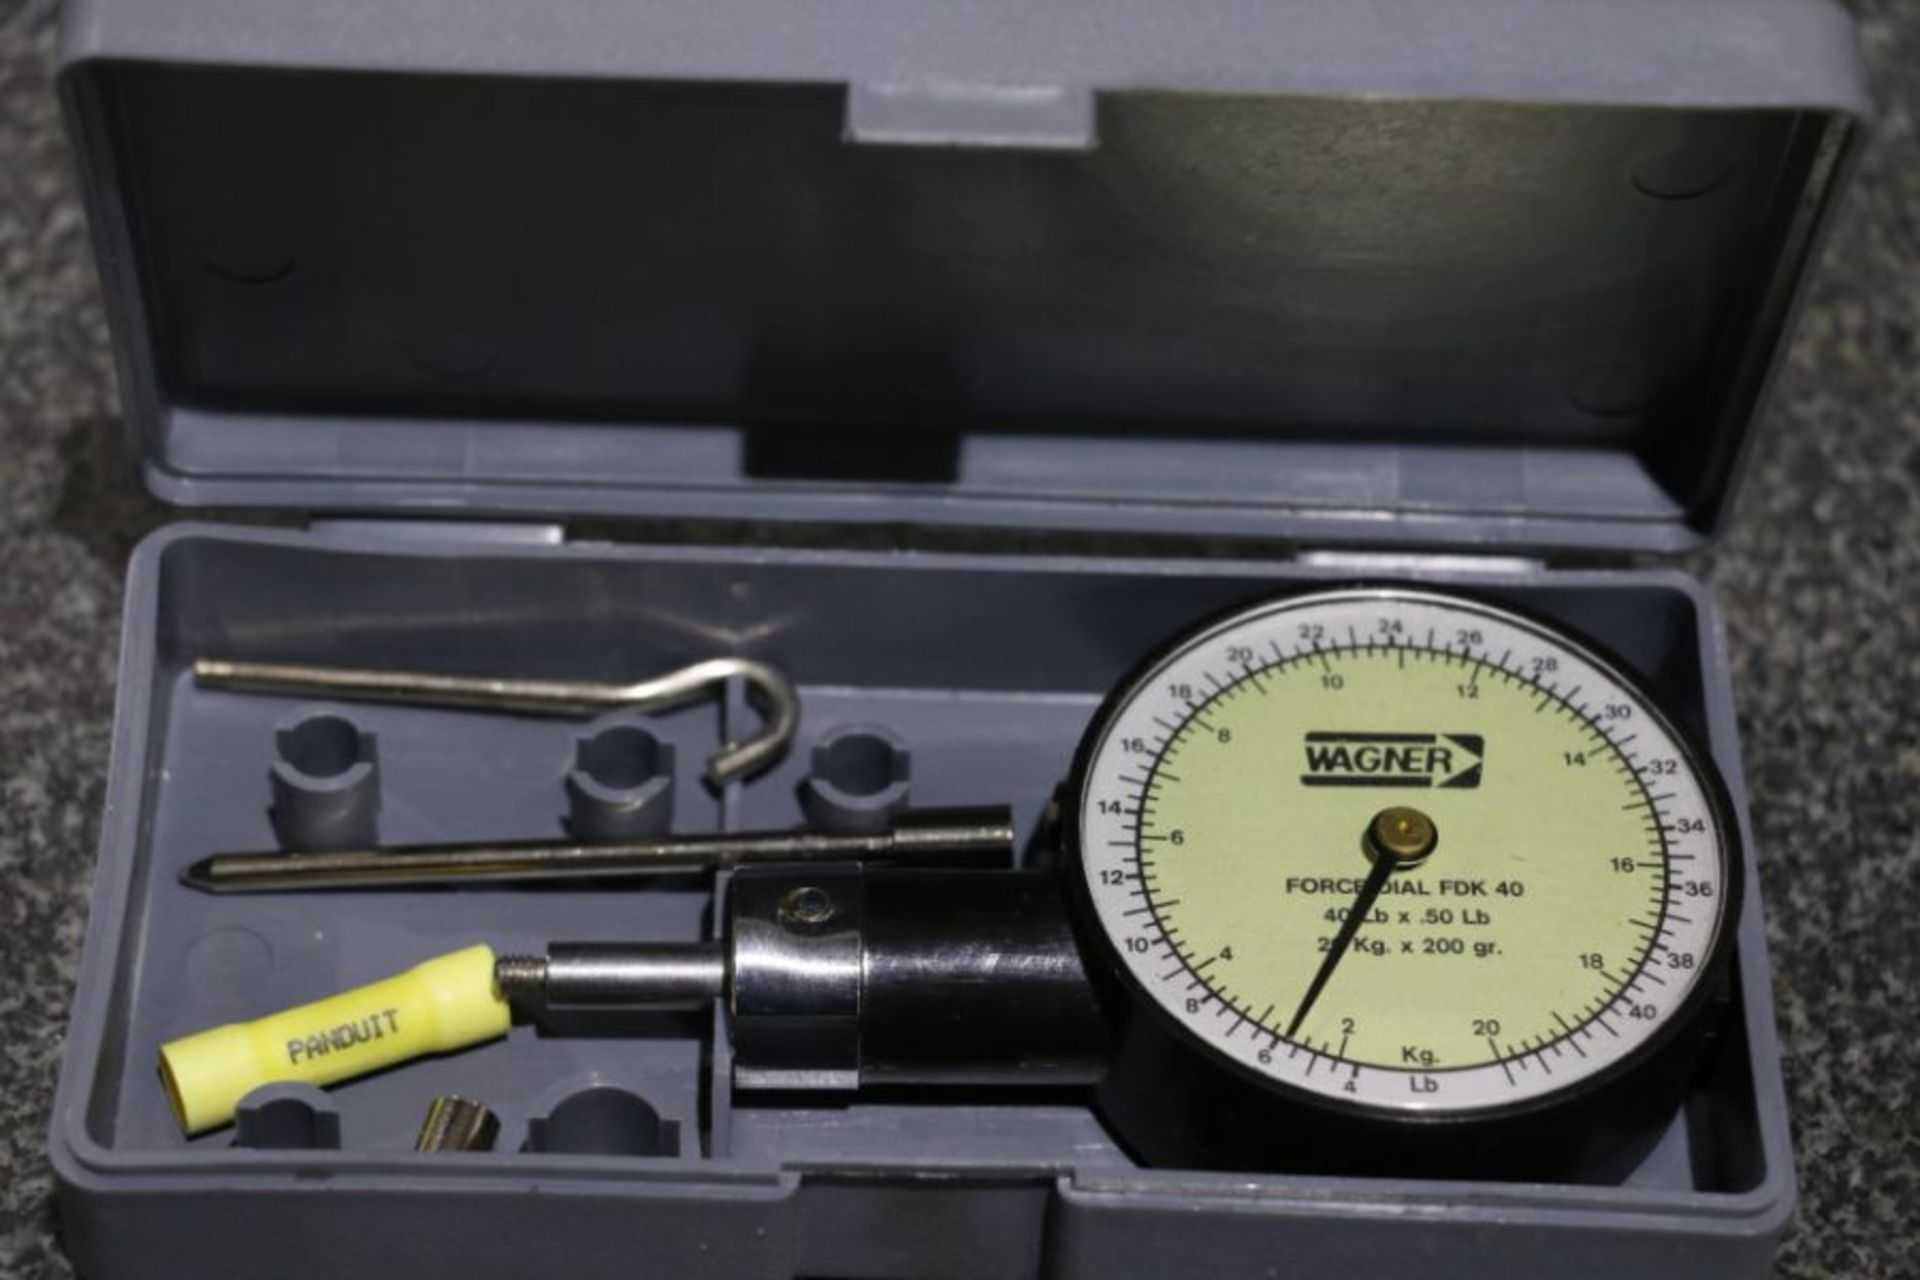 Wagner Instruments FDK-40 Push/Pull Force Gage